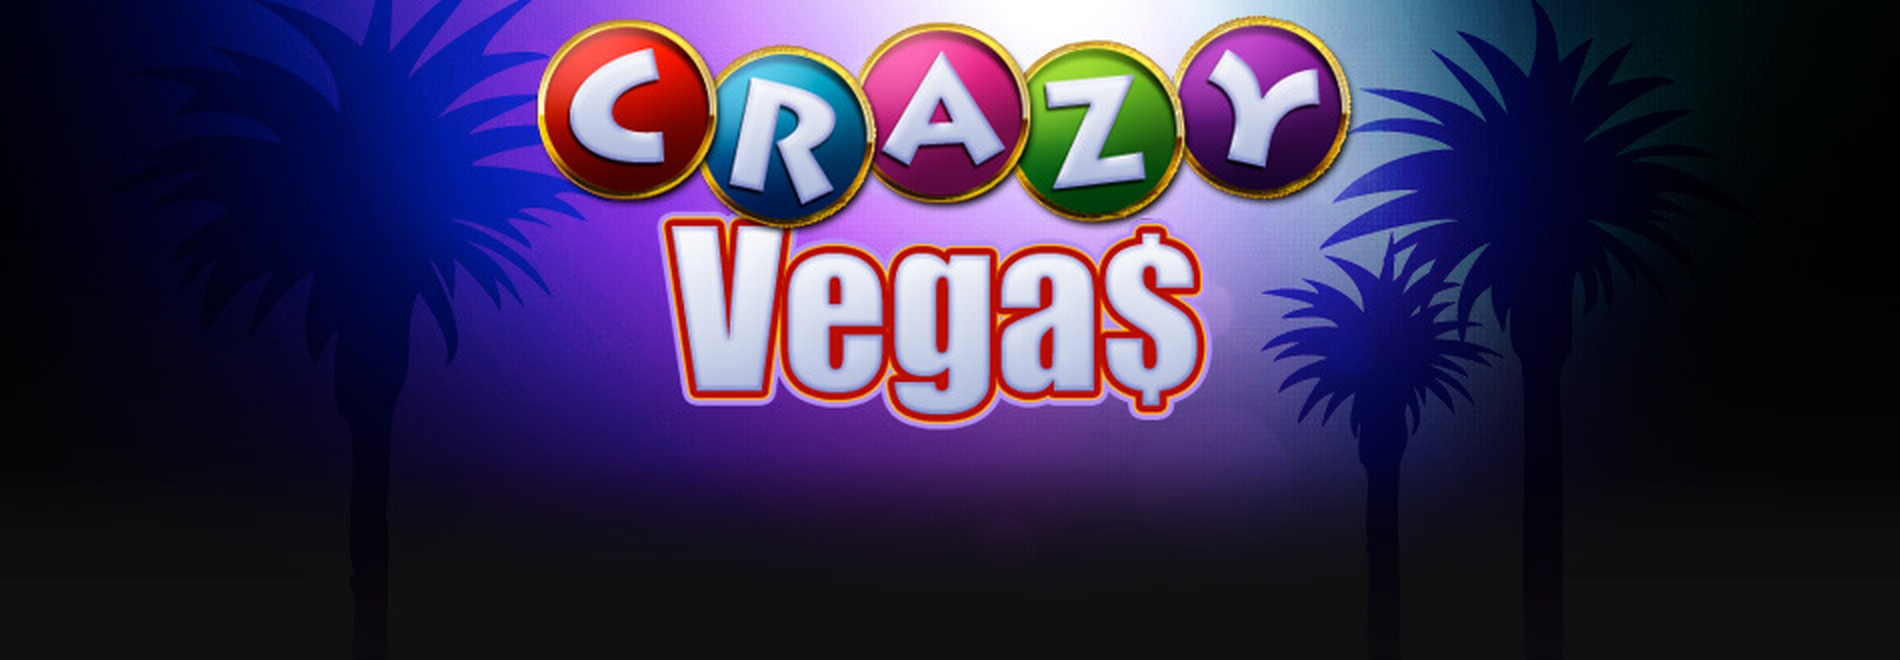 The Crazy Vegas Online Slot Demo Game by Real Time Gaming